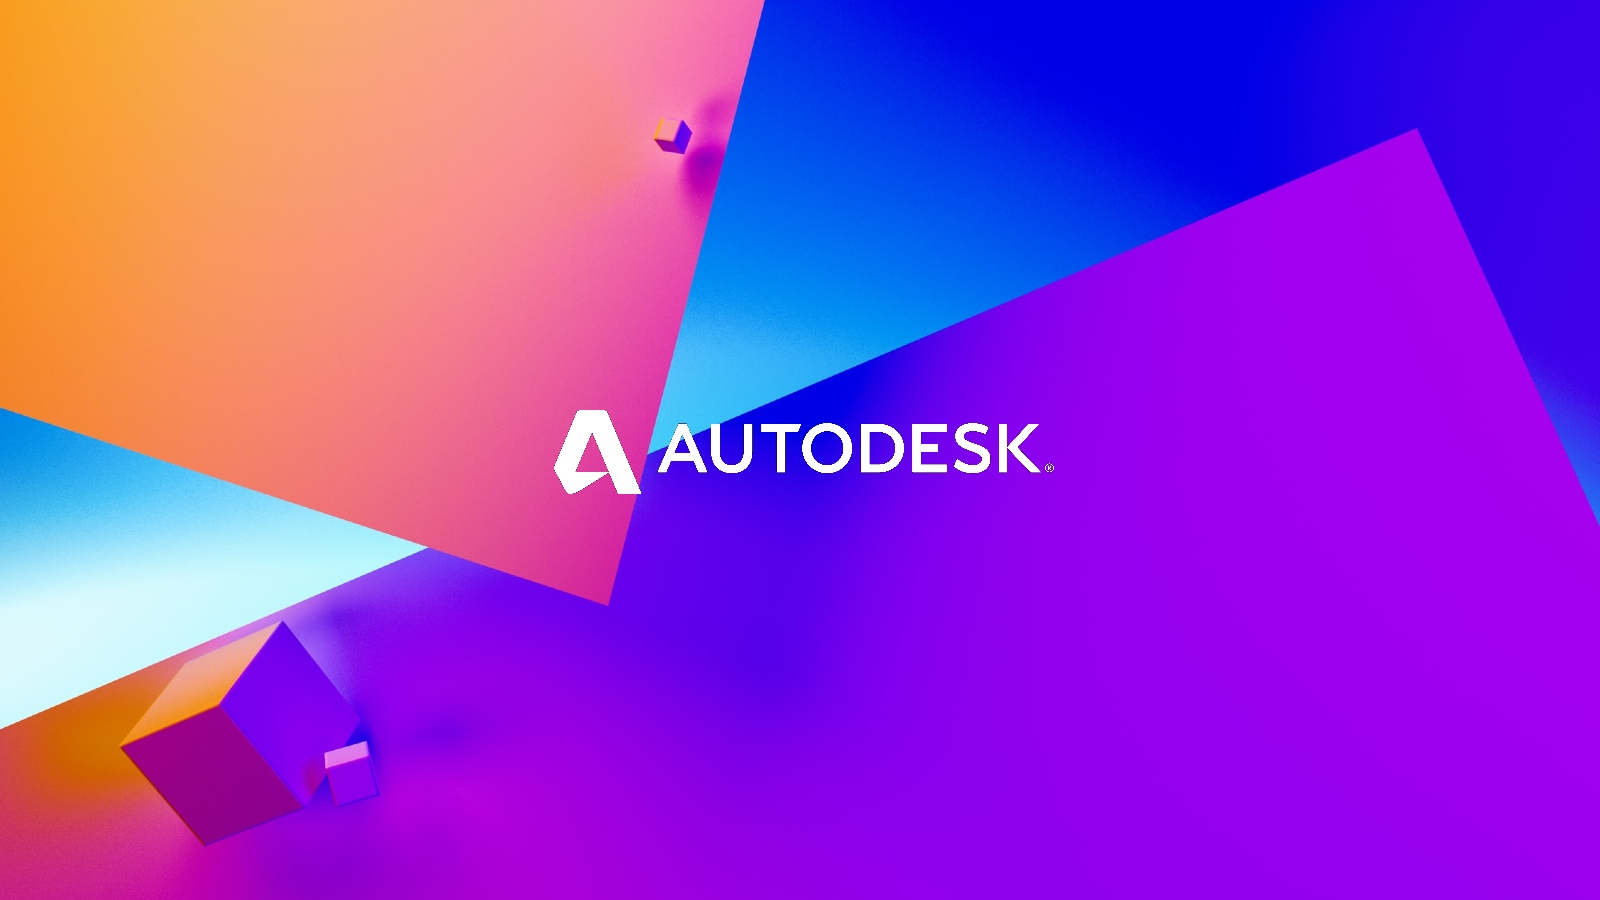 Autodesk reveals it was targeted by Russian SolarWinds hackers